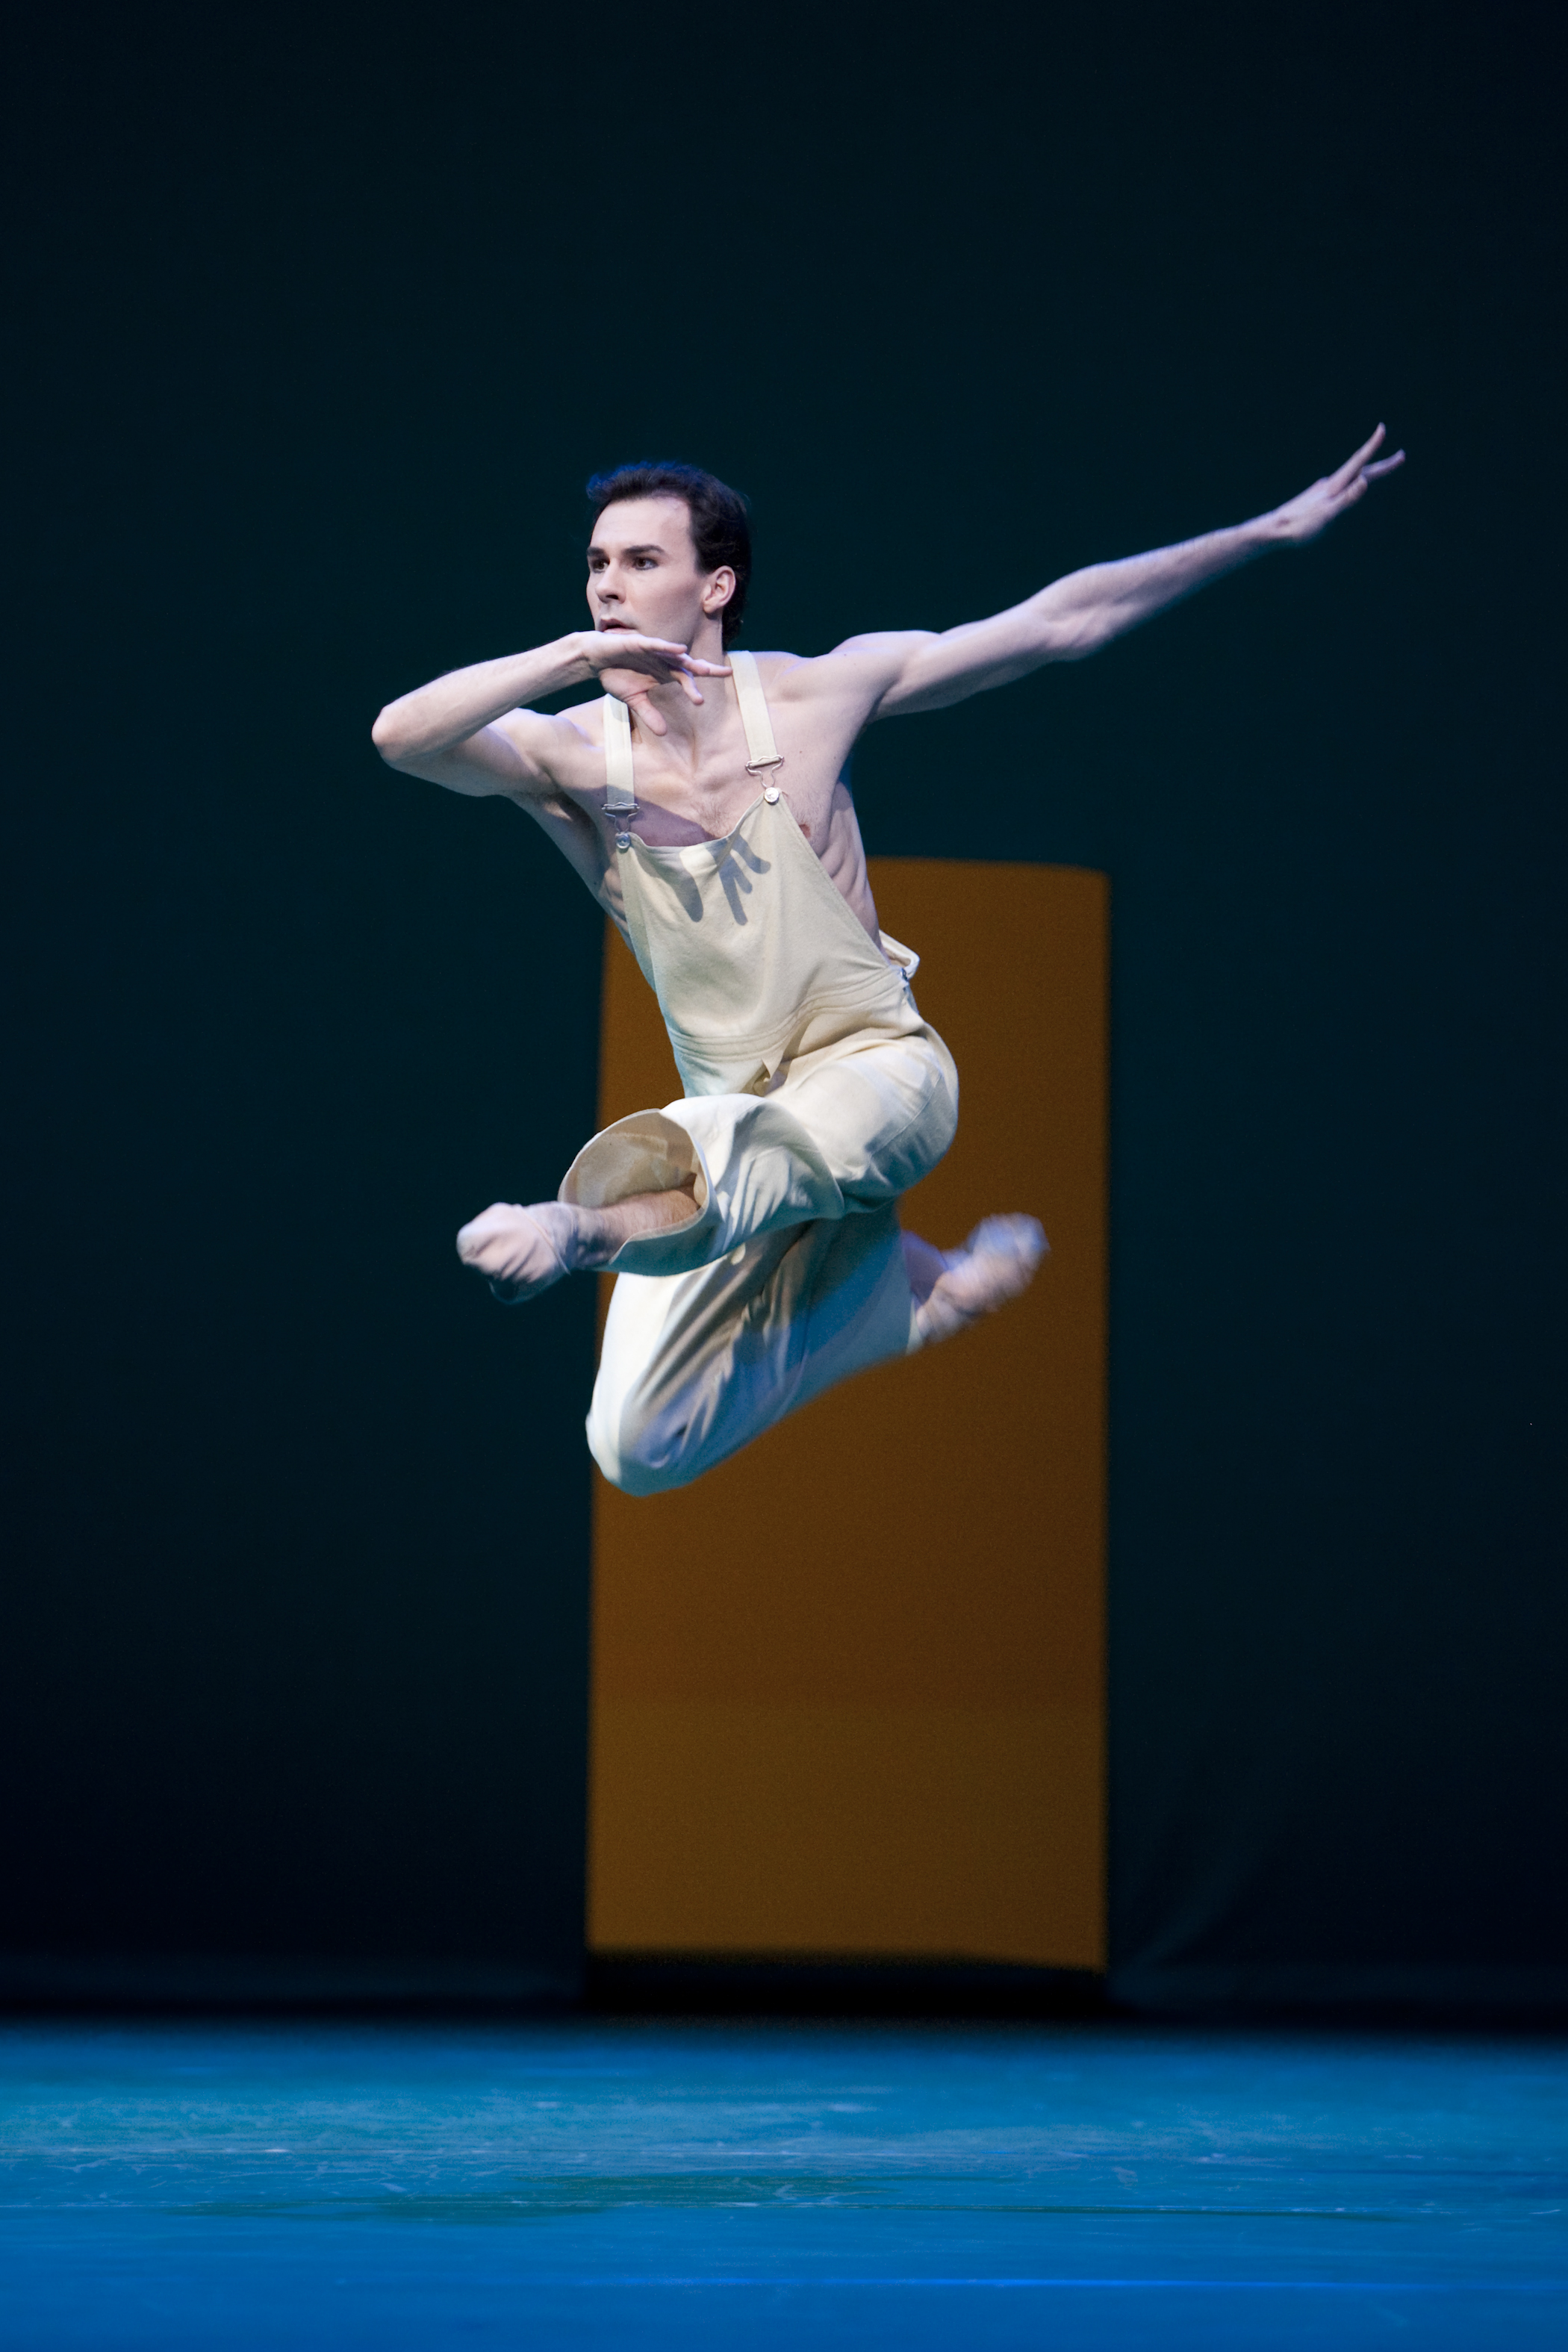 dancer jumps in the air on stage